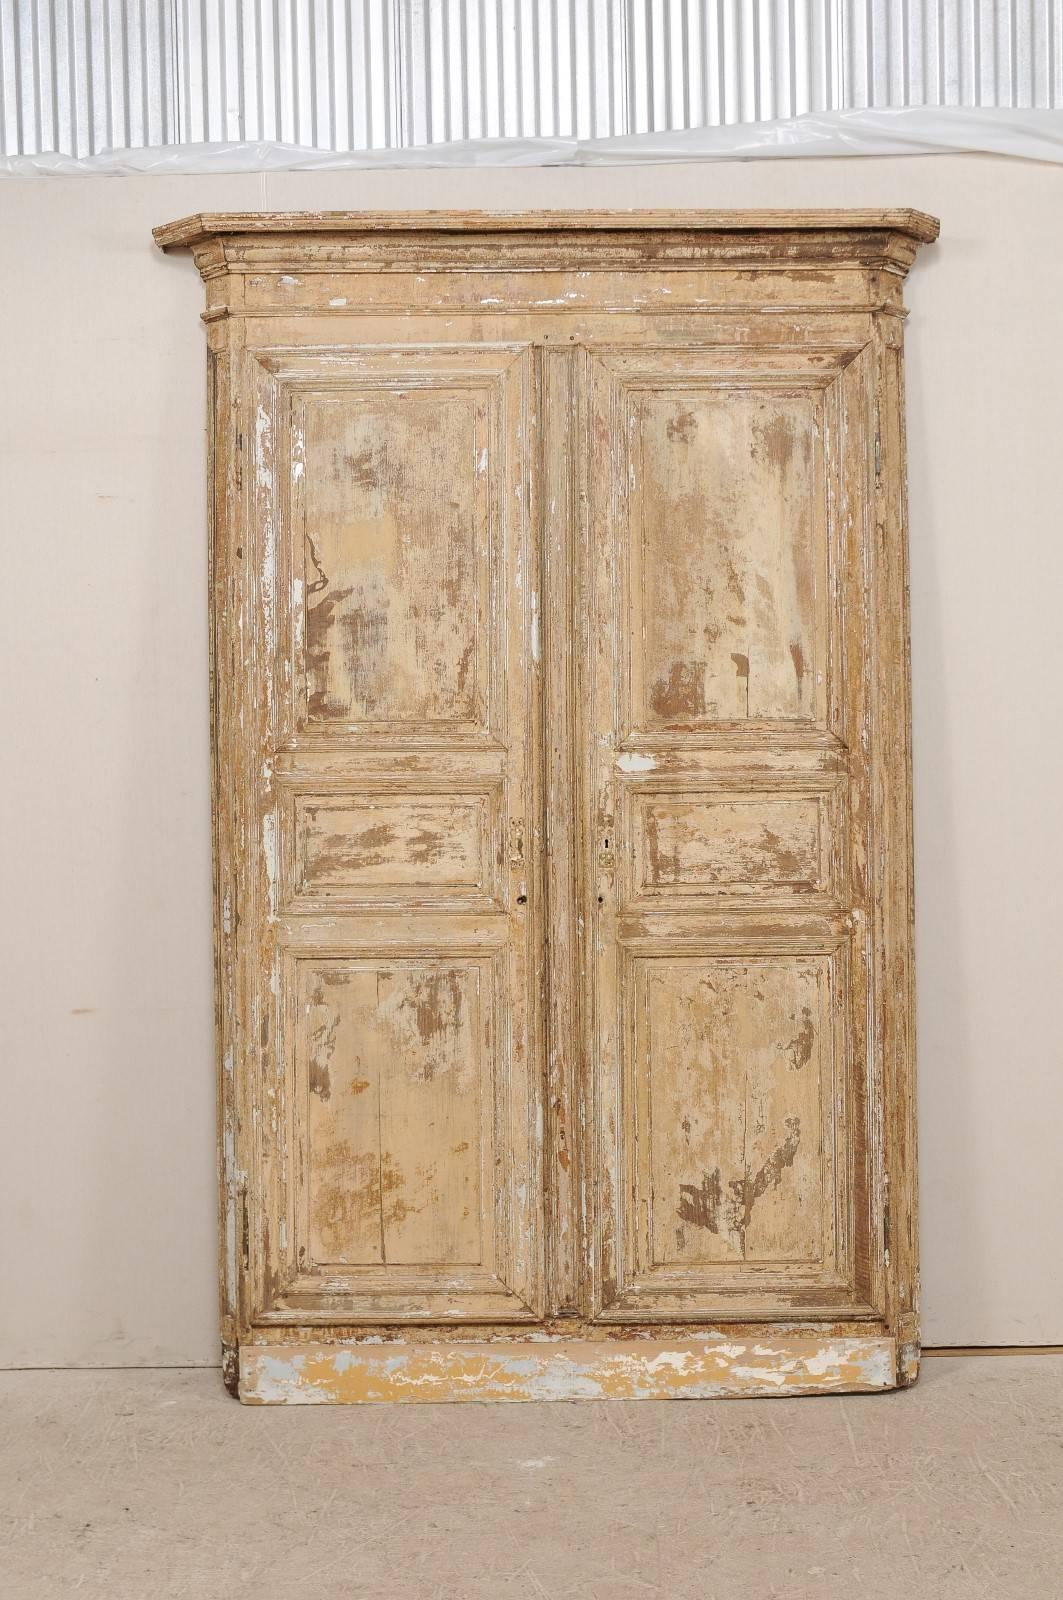 A Pair Of Early 19th Century Italian Doors Within Their Original Carved  Wood Casing. This